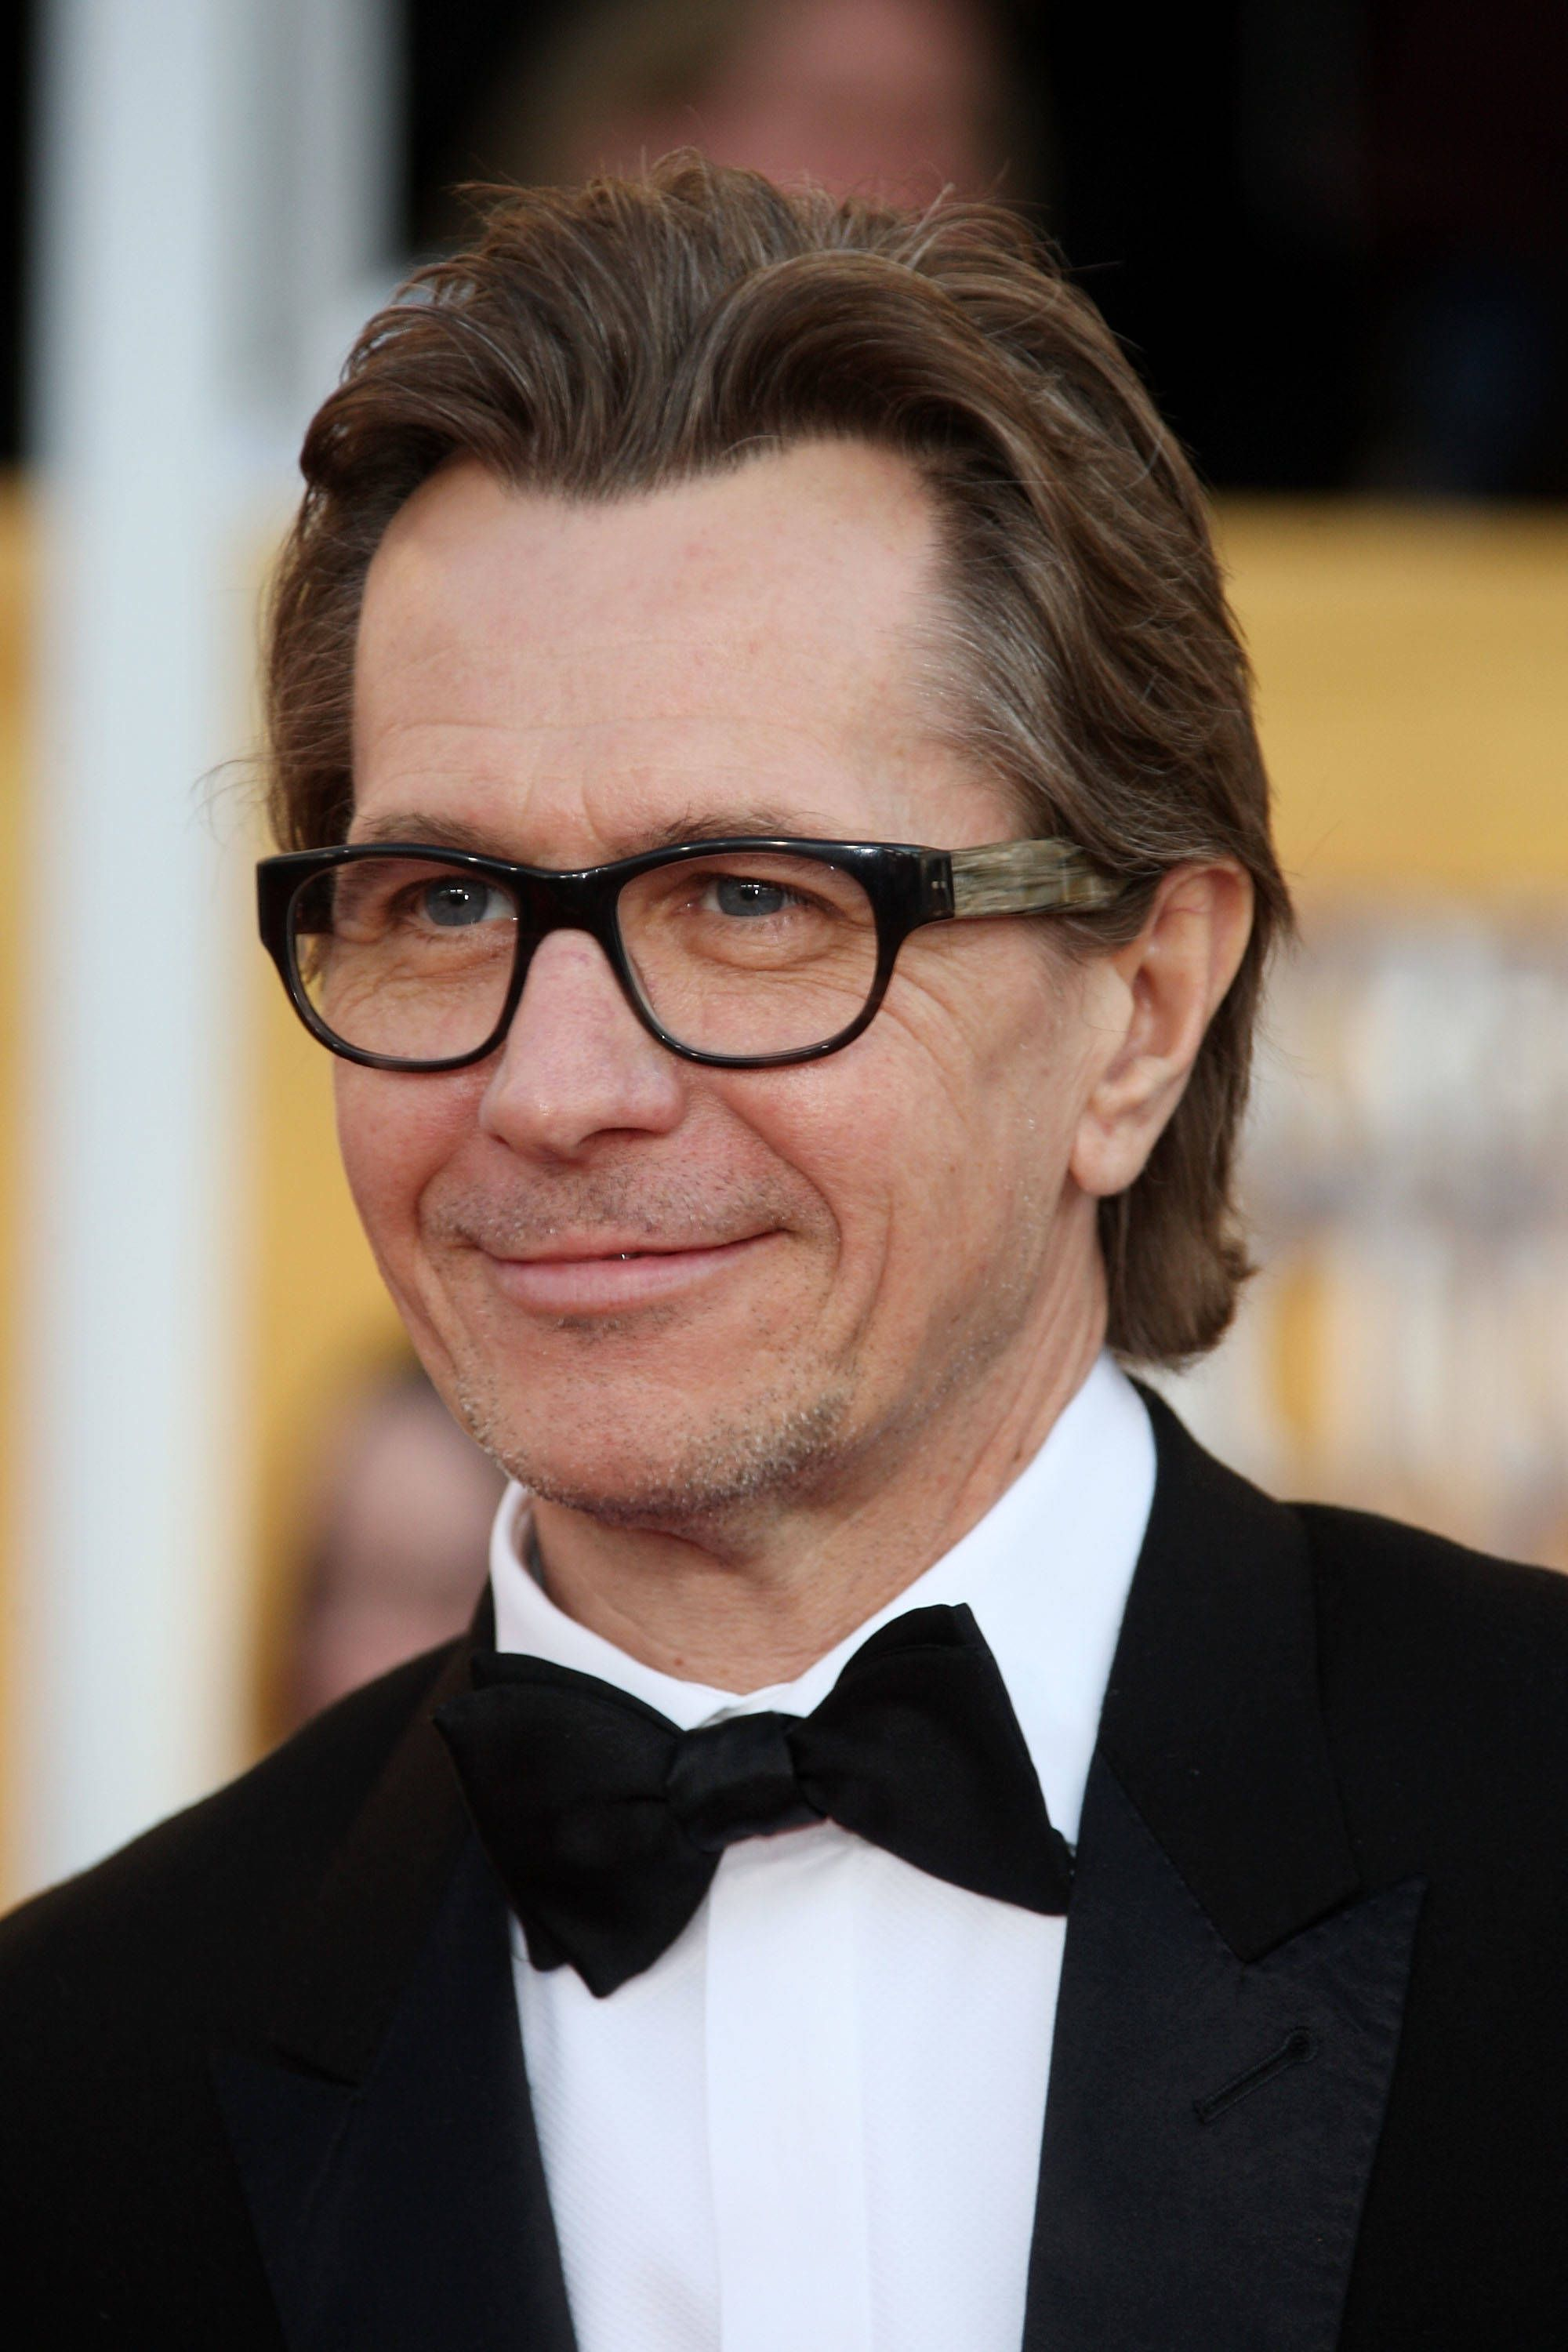 Geek Chic Geeky Glasses Aren T Just For Geeks Anymore Gary Oldman Attore Occhiali